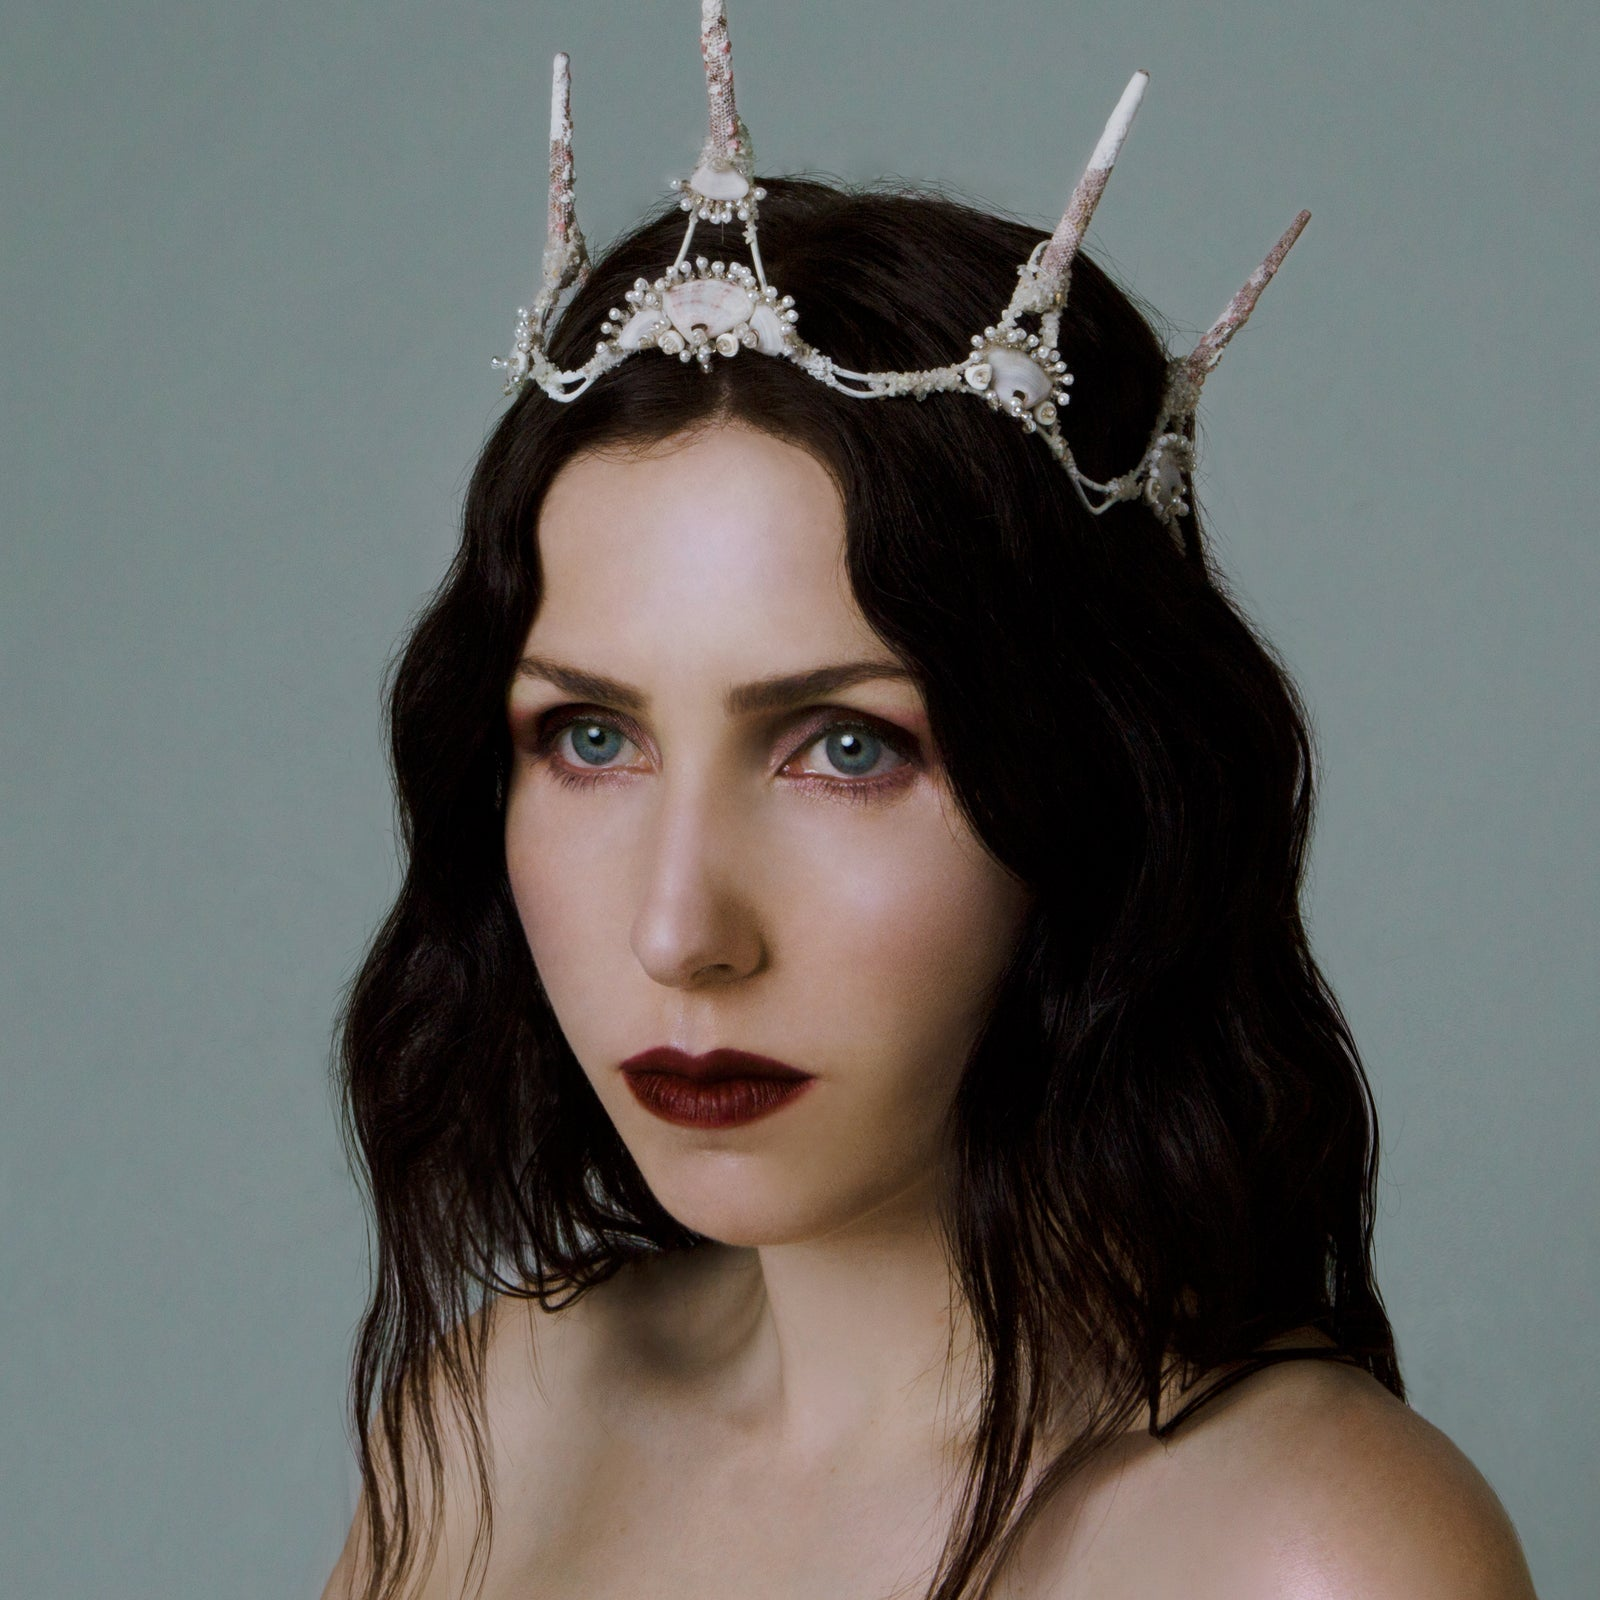 Chelsea Wolfe collaboration makeup Swarm natural red lipstick cruelty free